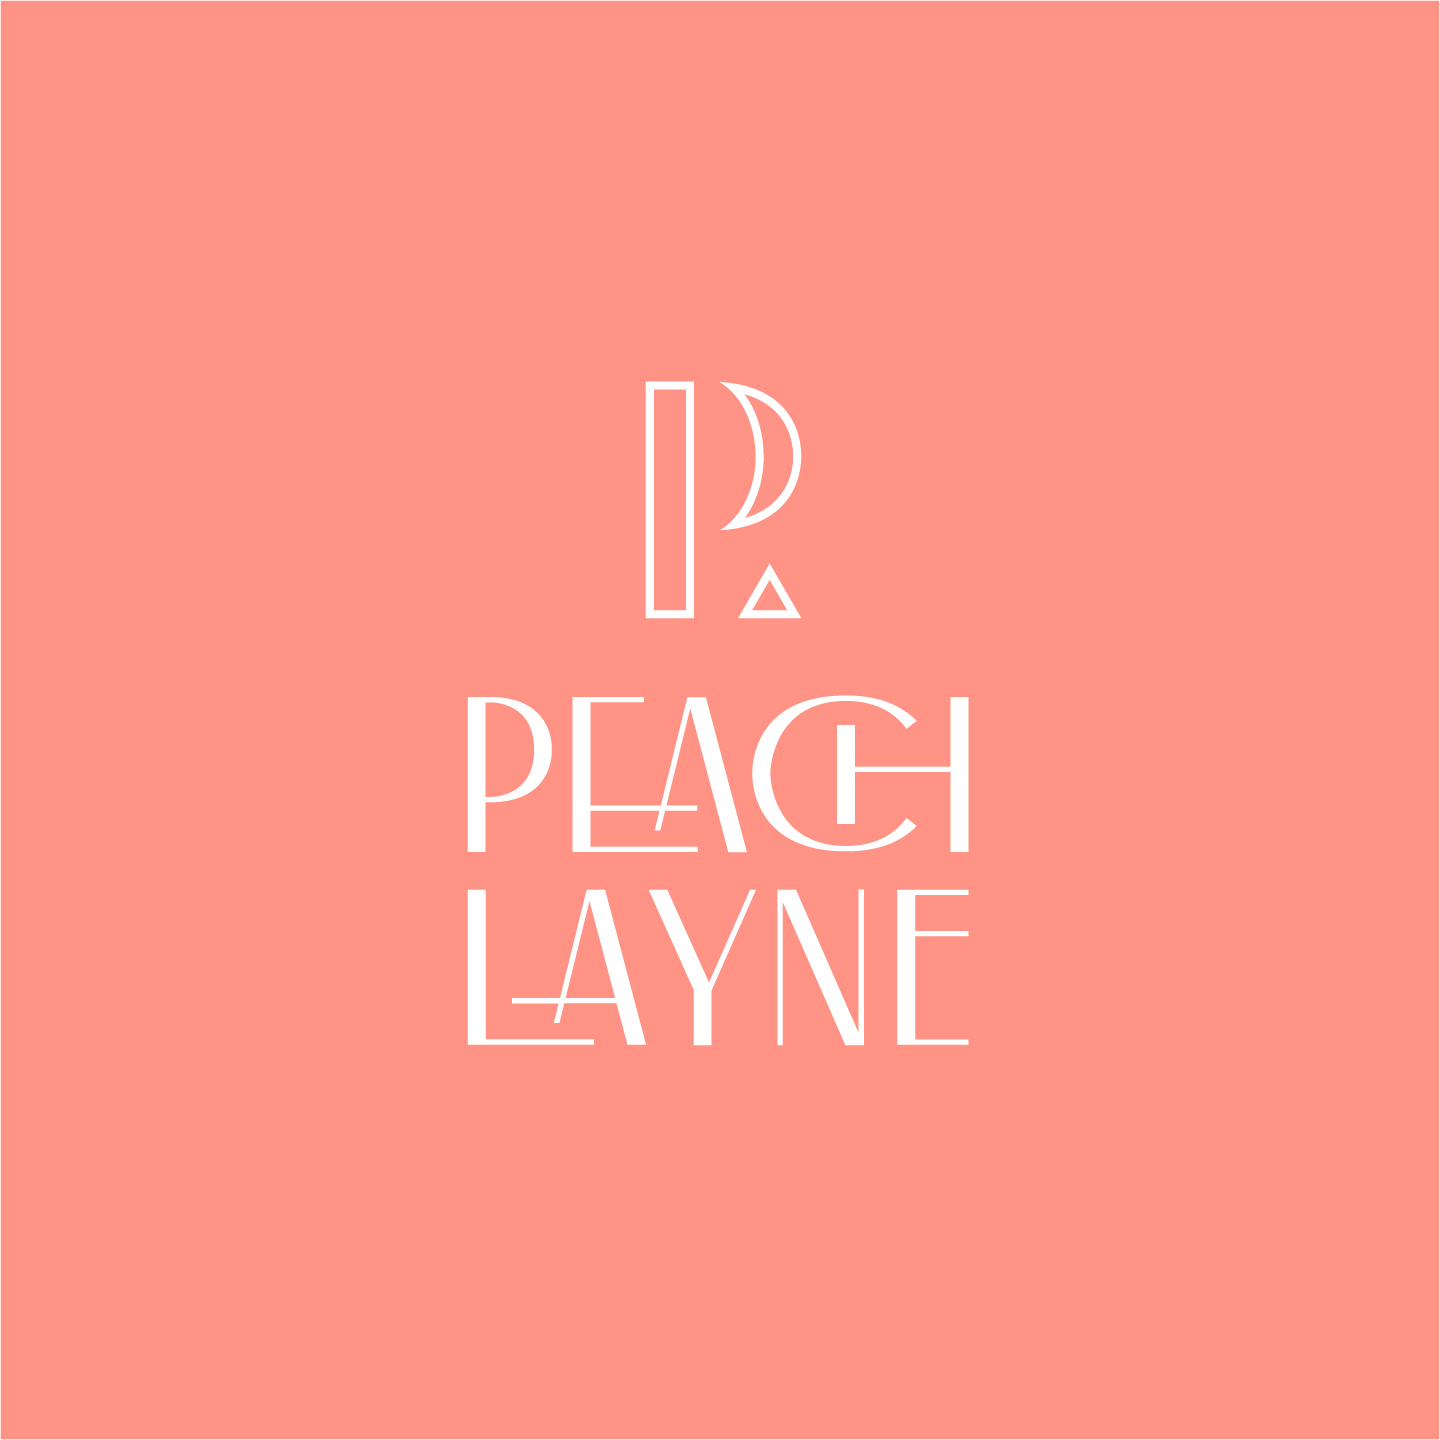 Peach Layne logo design by Hunter Oden of oden.house